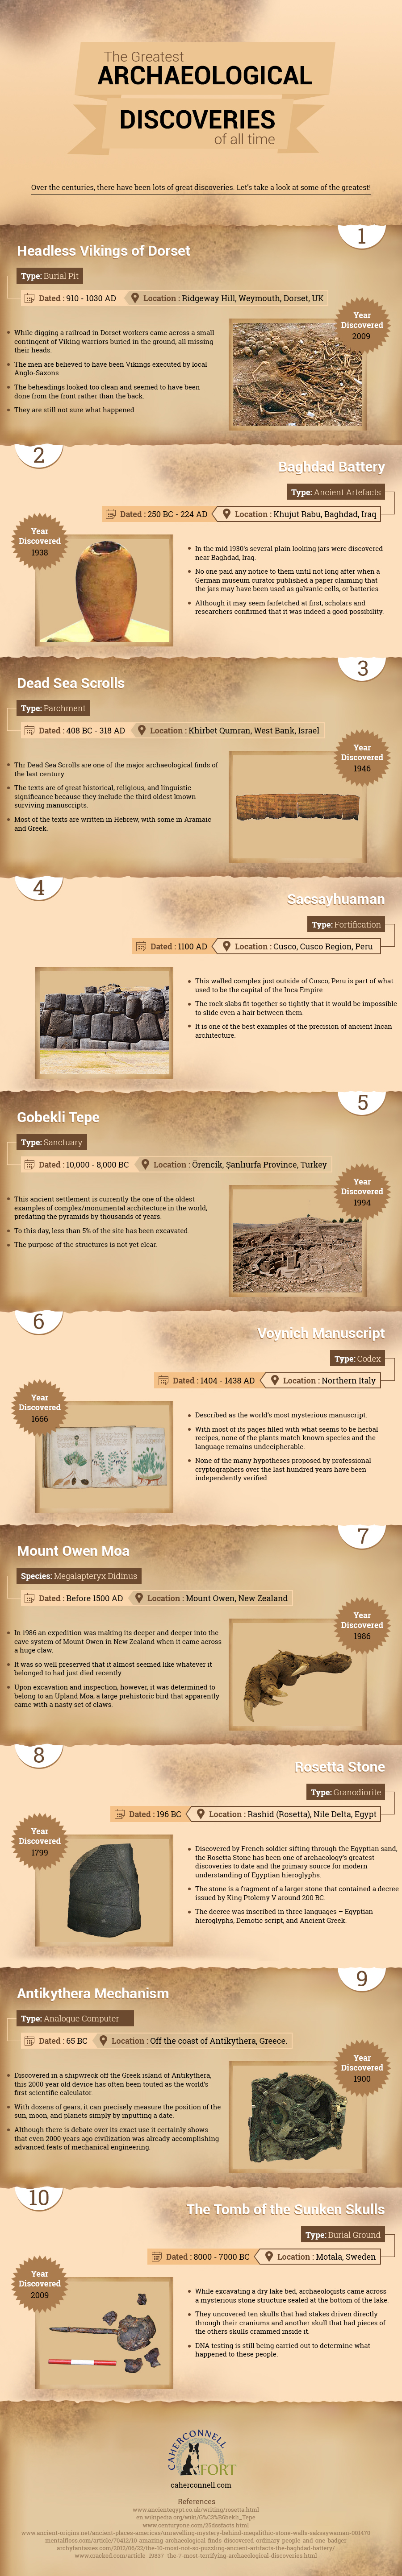 The Greatest Archaeological Discoveries Of All Time [Infographic]